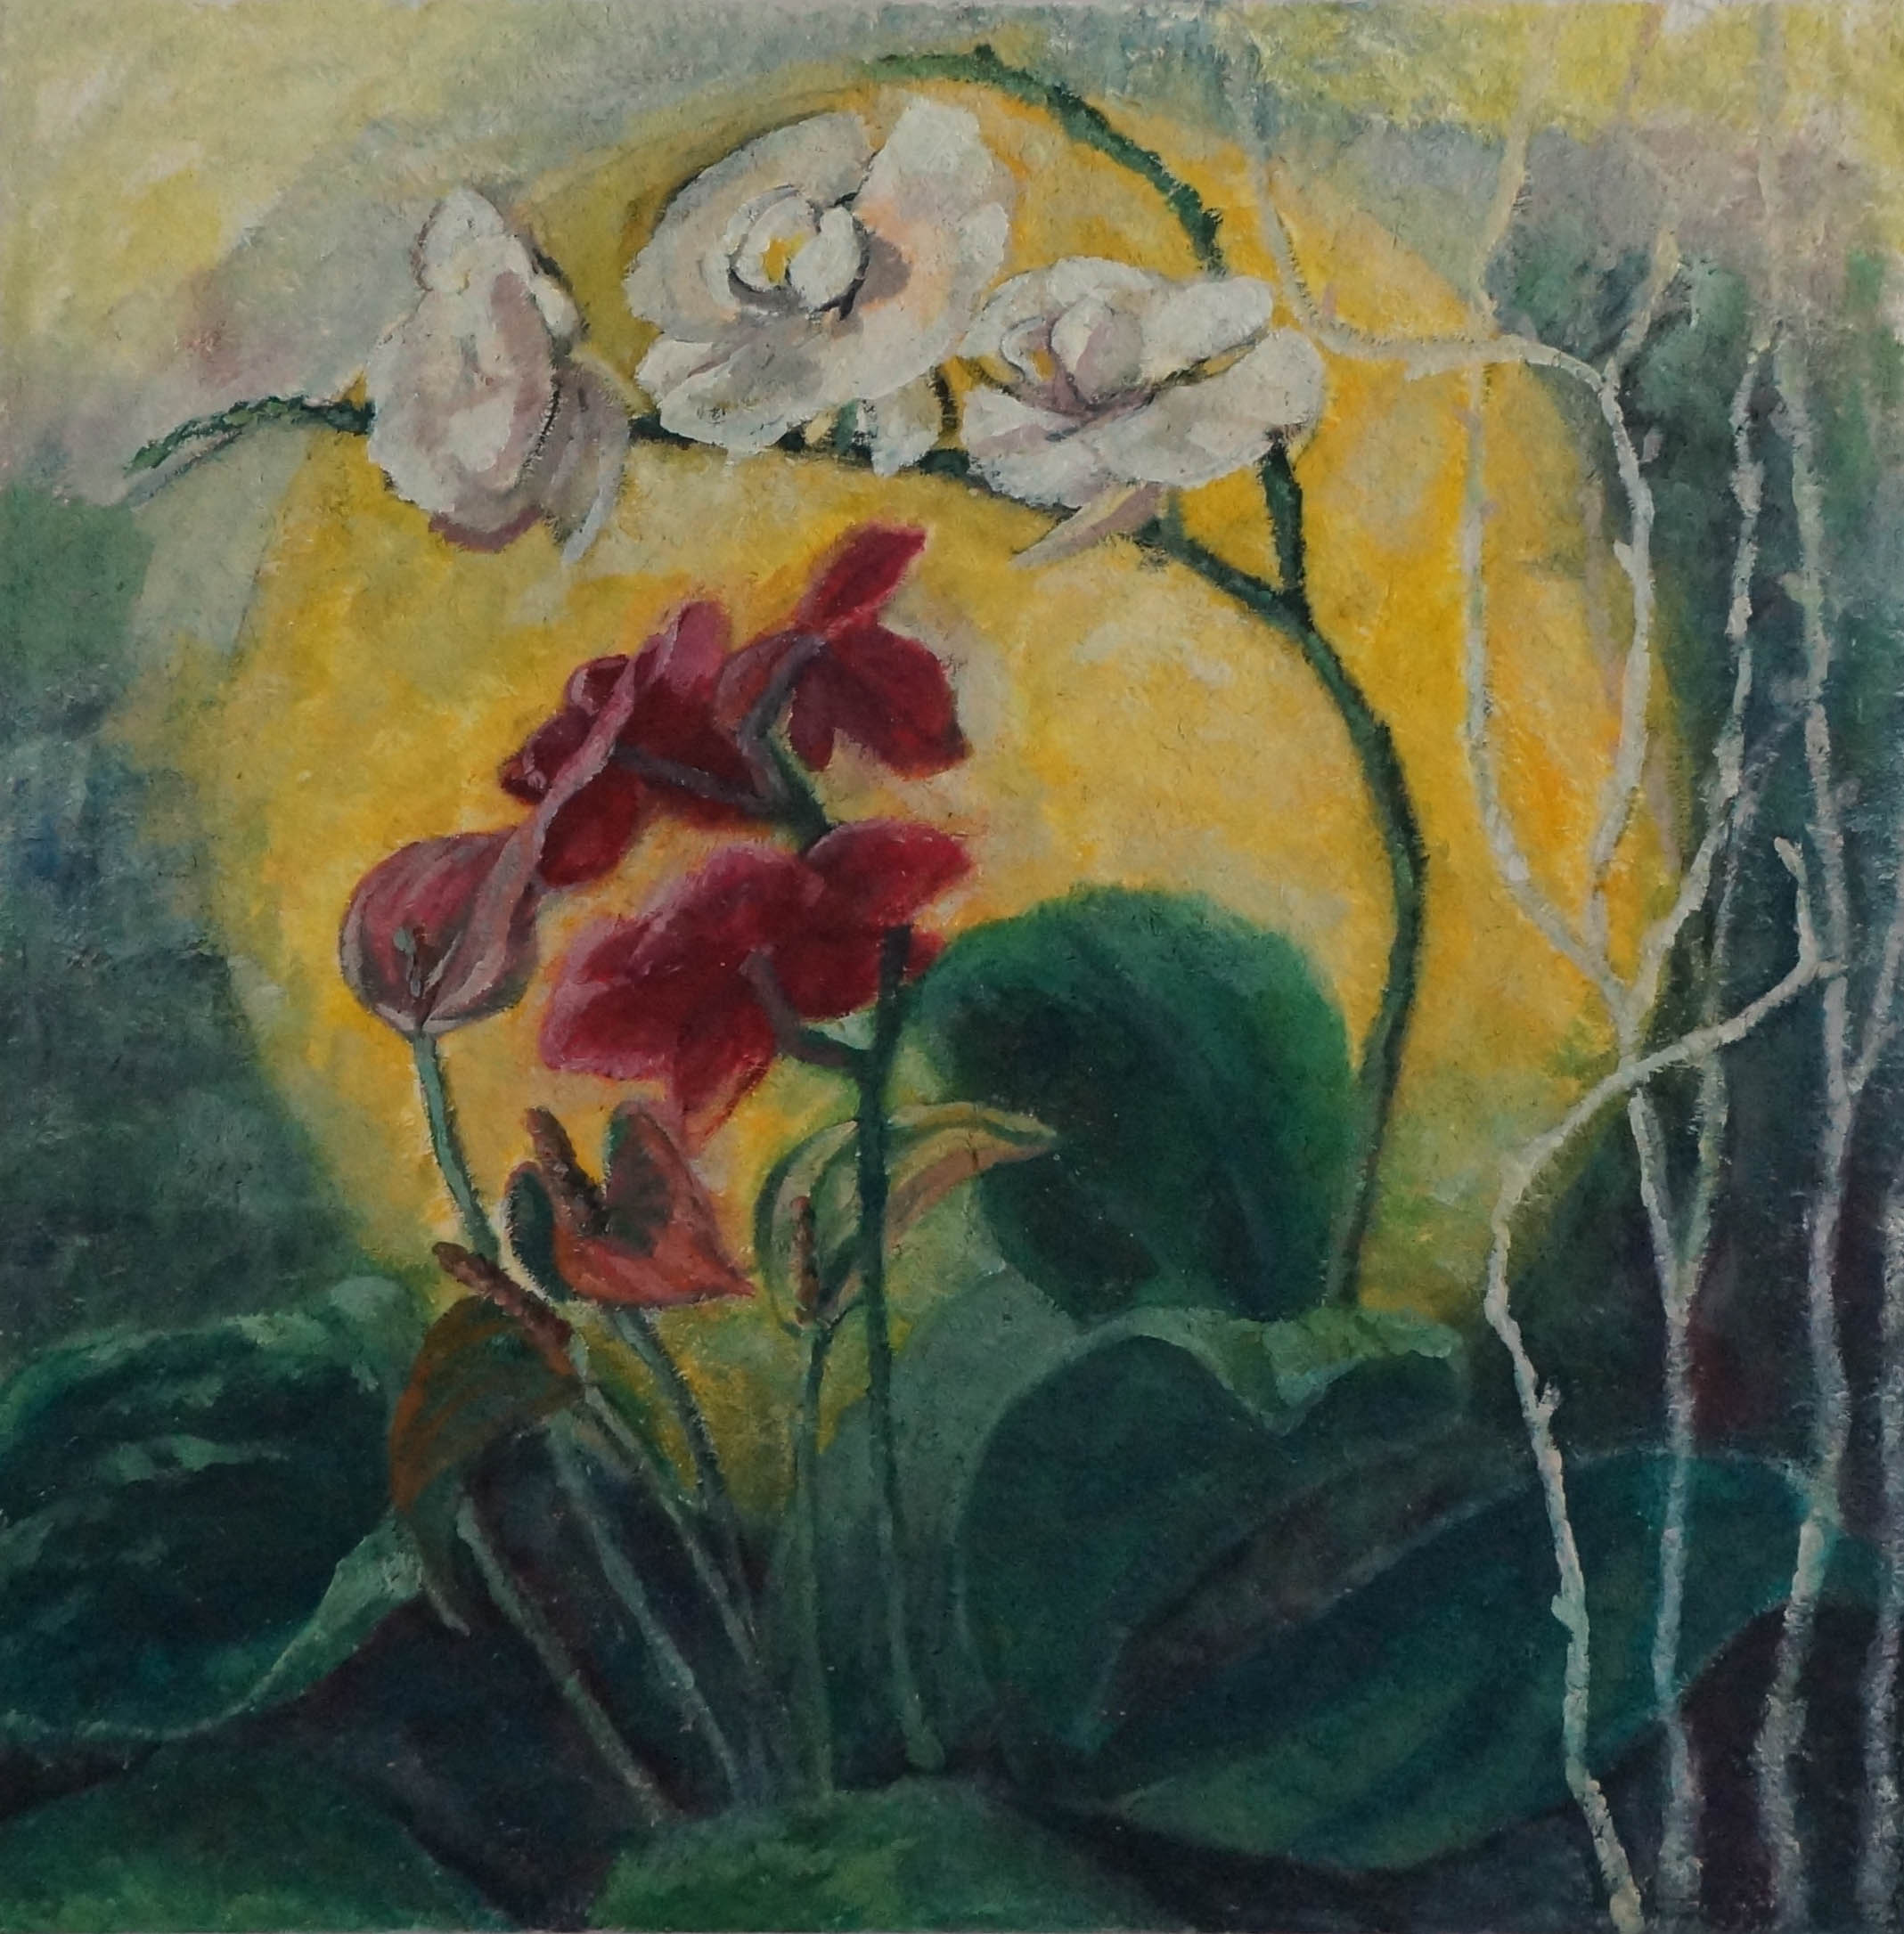 Moon and Orchid Flower20x20in.oil on mixed media on canvas.2015